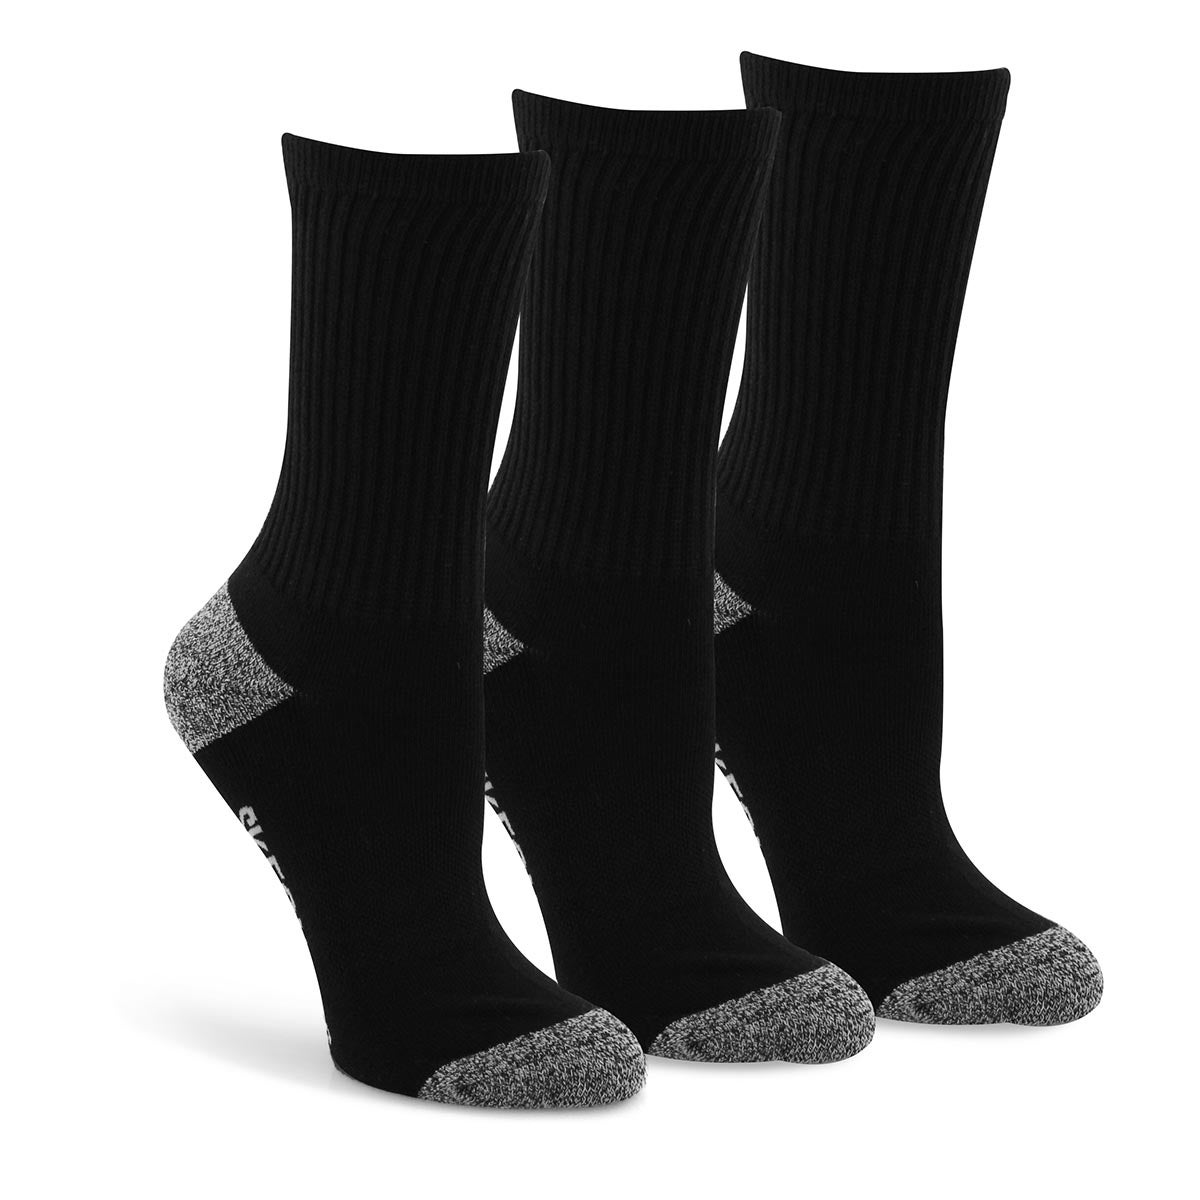 Bys Half Terry Ribbed Crew blk socks 3pk